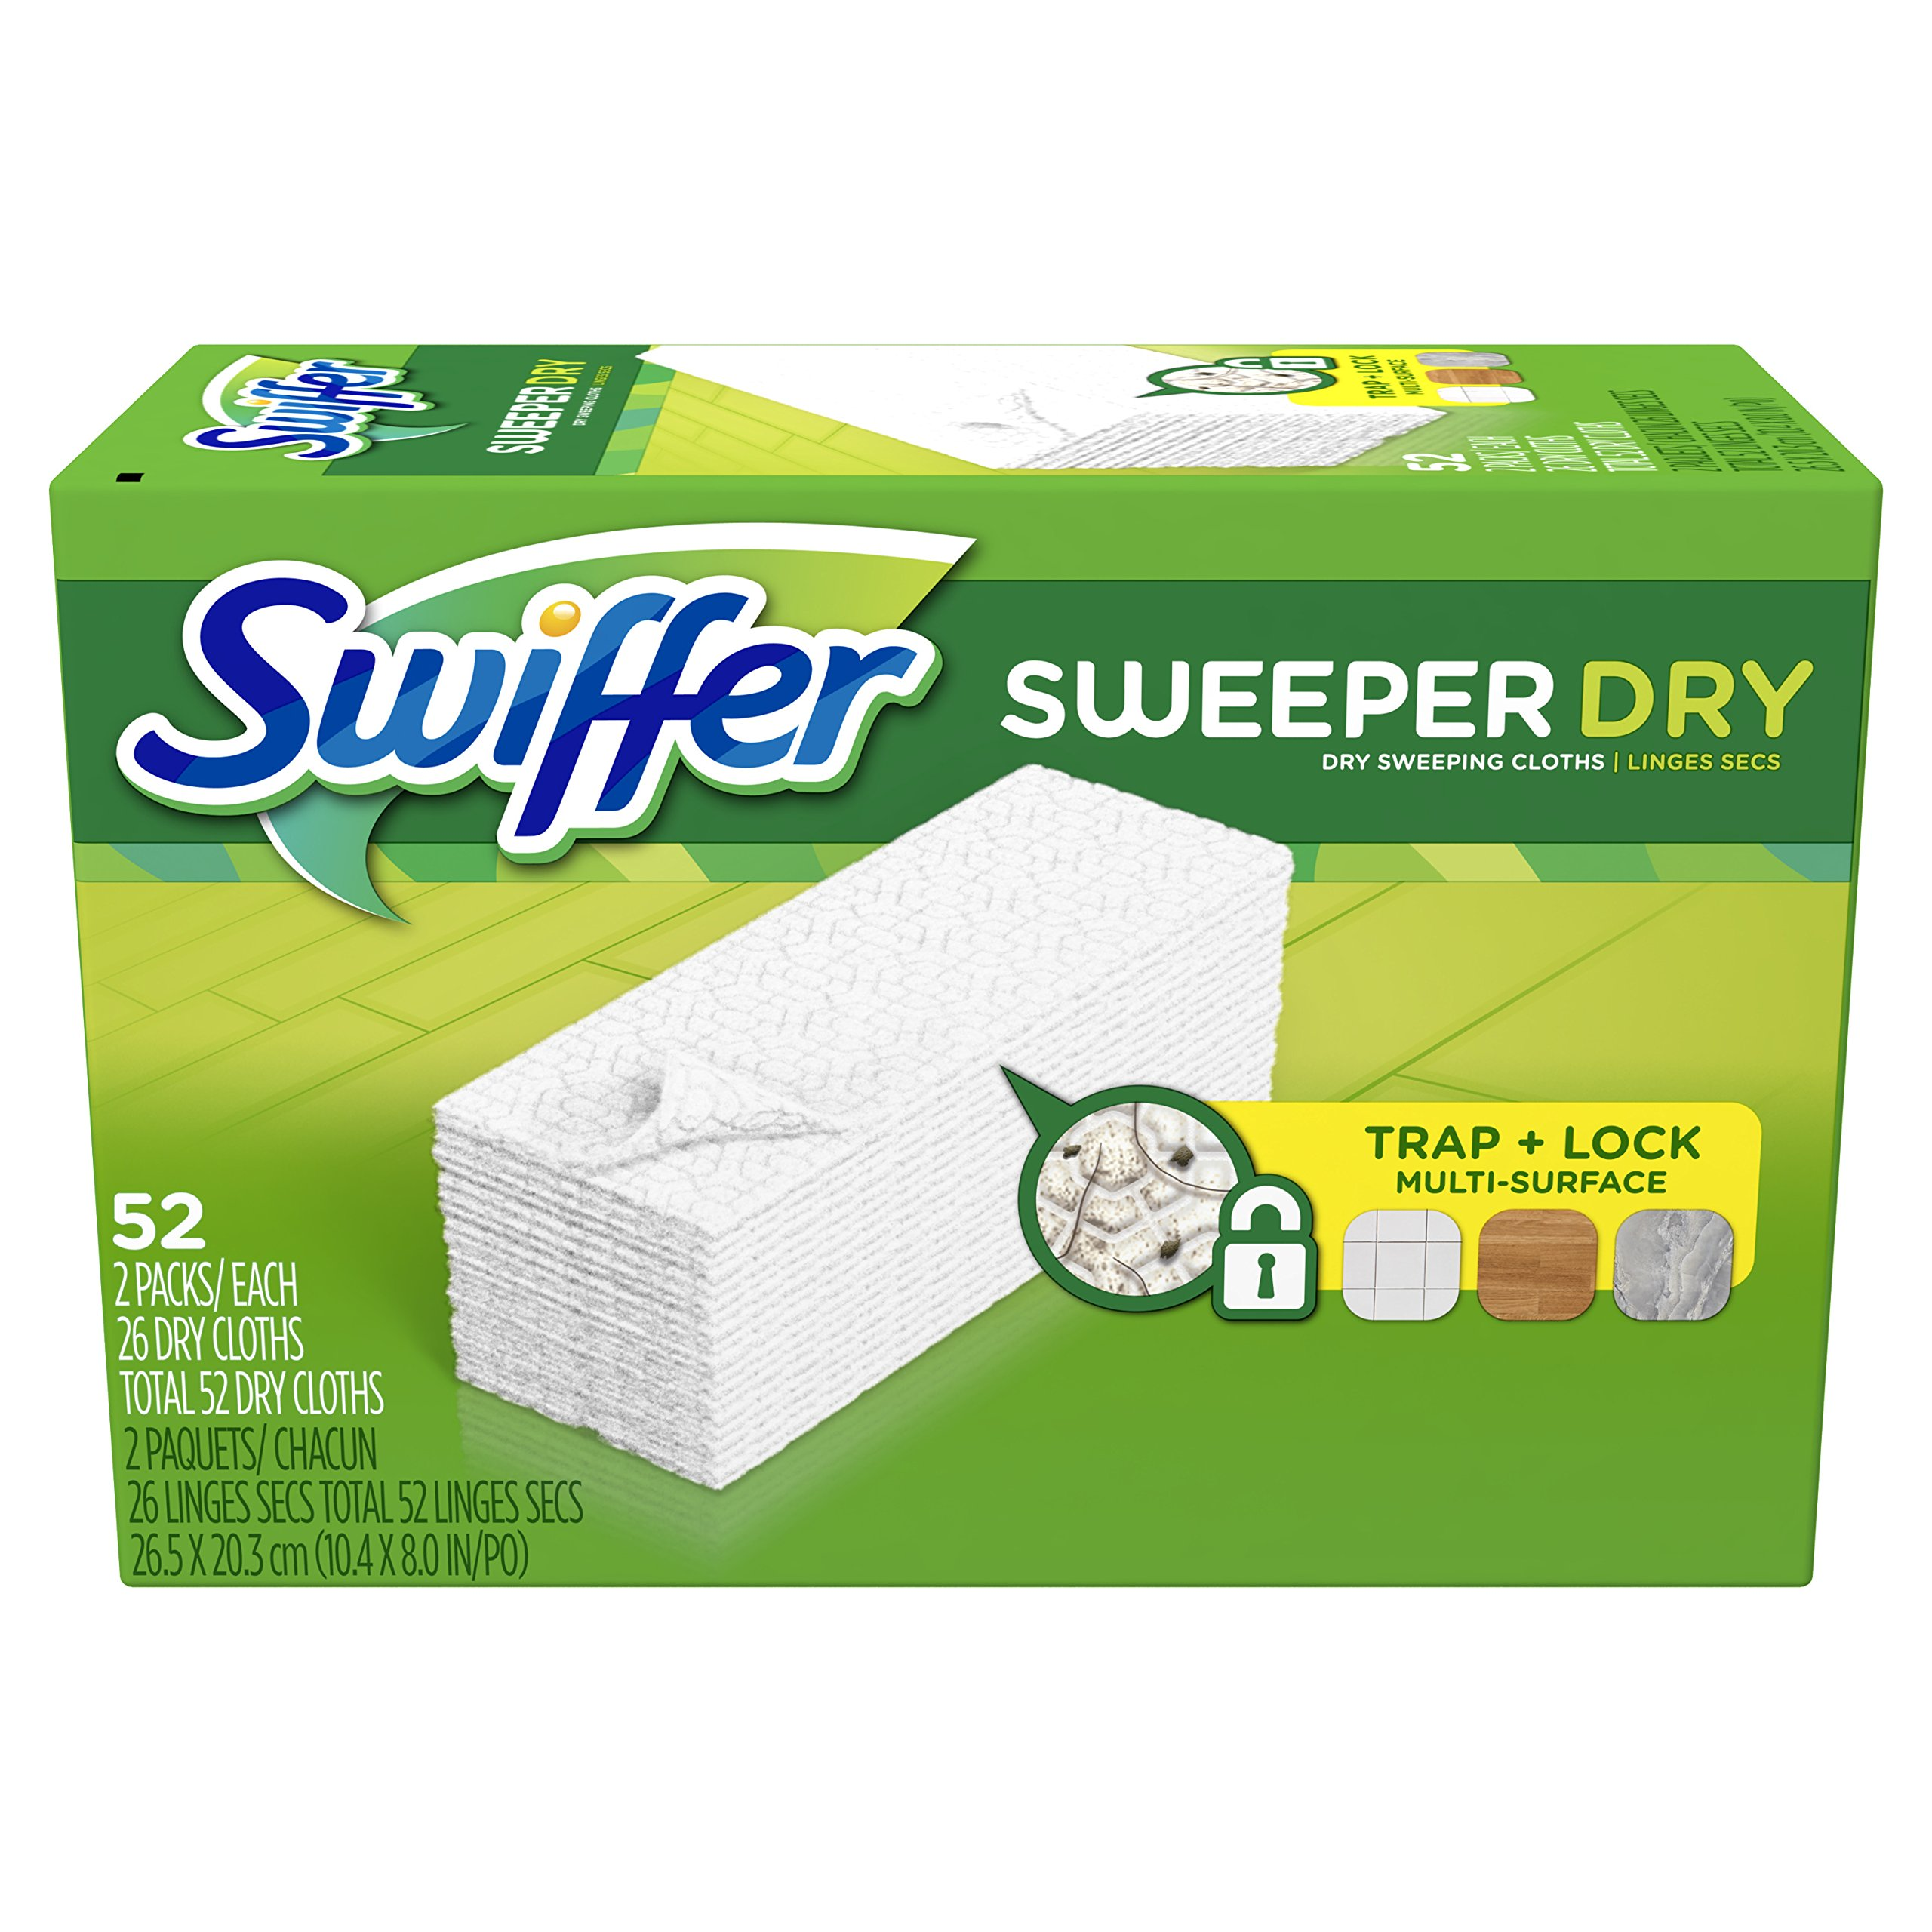 Swiffer Sweeper Dry Mop Refills for Floor Mopping and Cleaning, All Purpose Floor Cleaning Product, Unscented, 52 Count by Swiffer